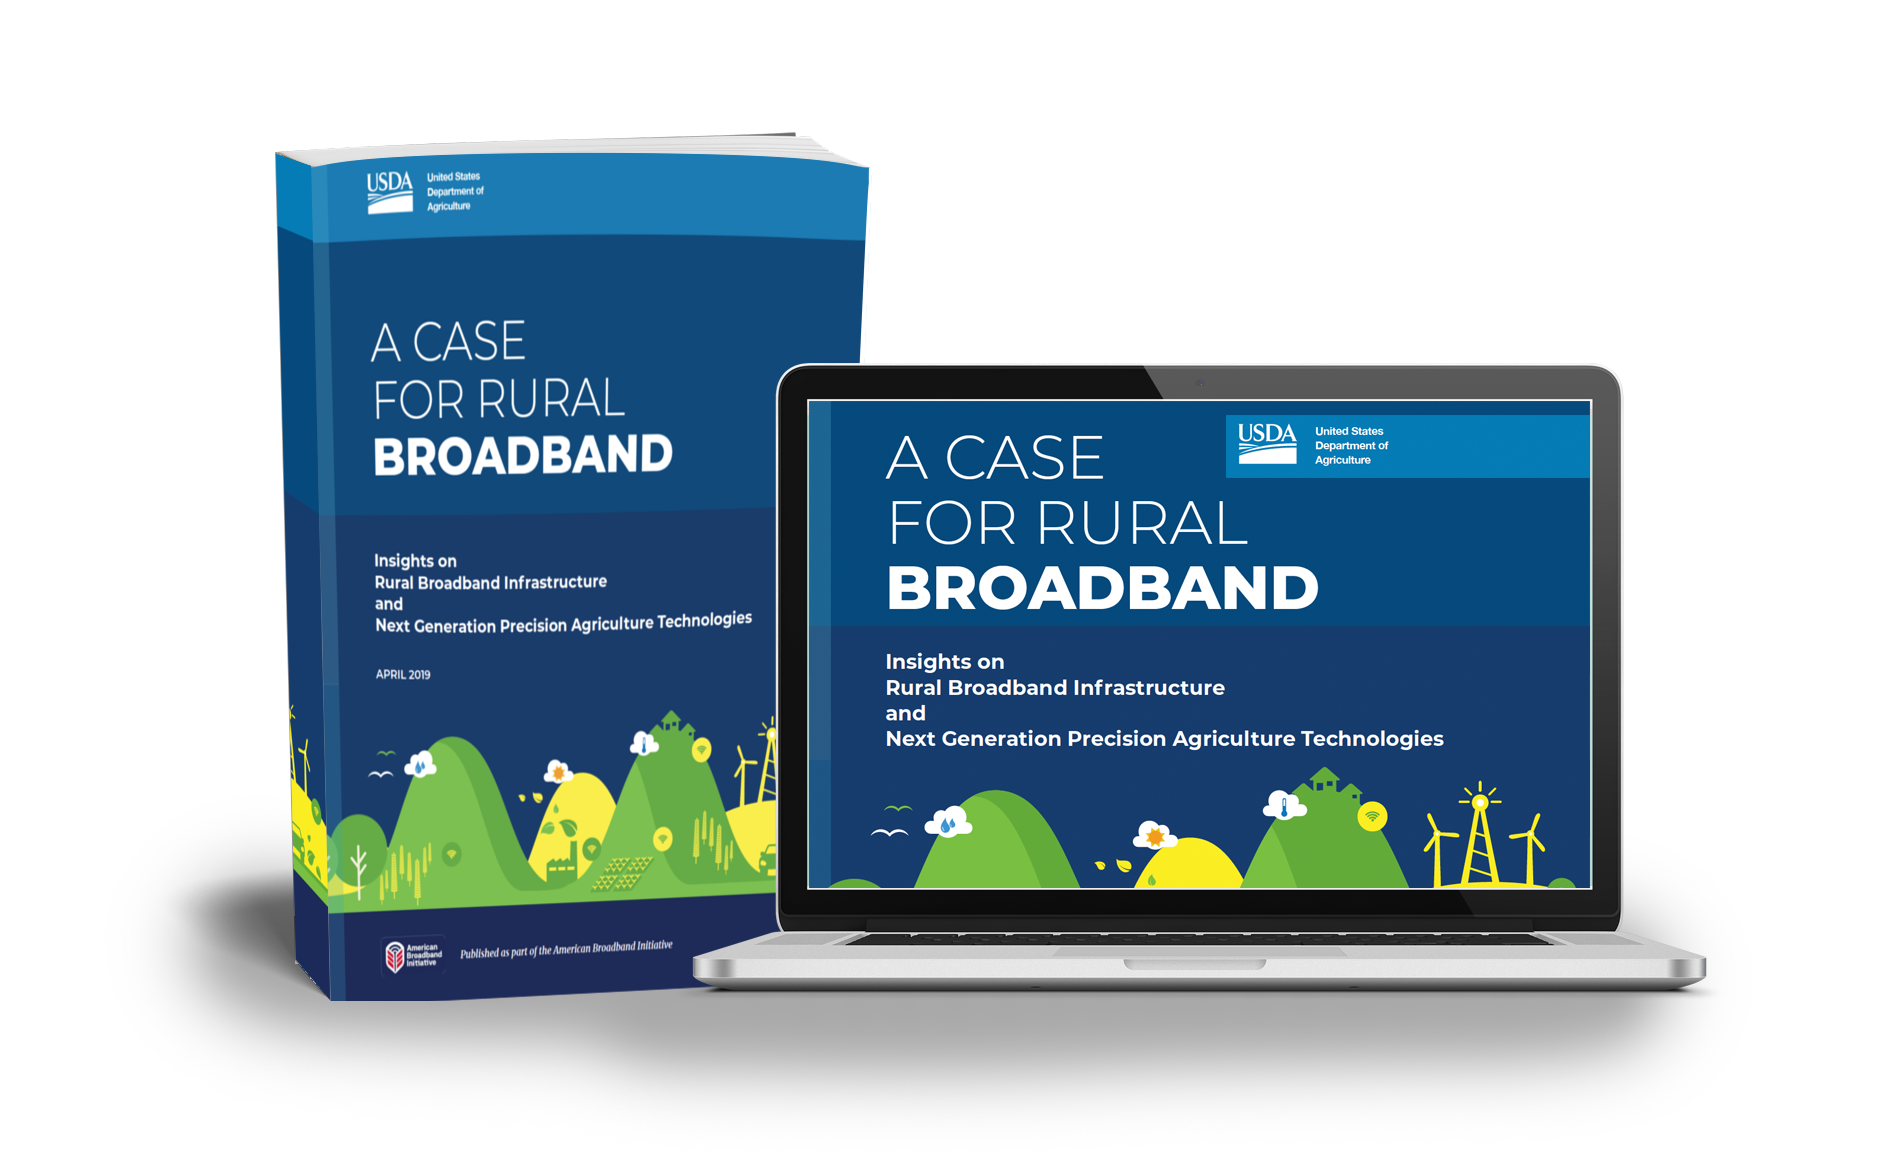 A Case for Rural Broadband graphic